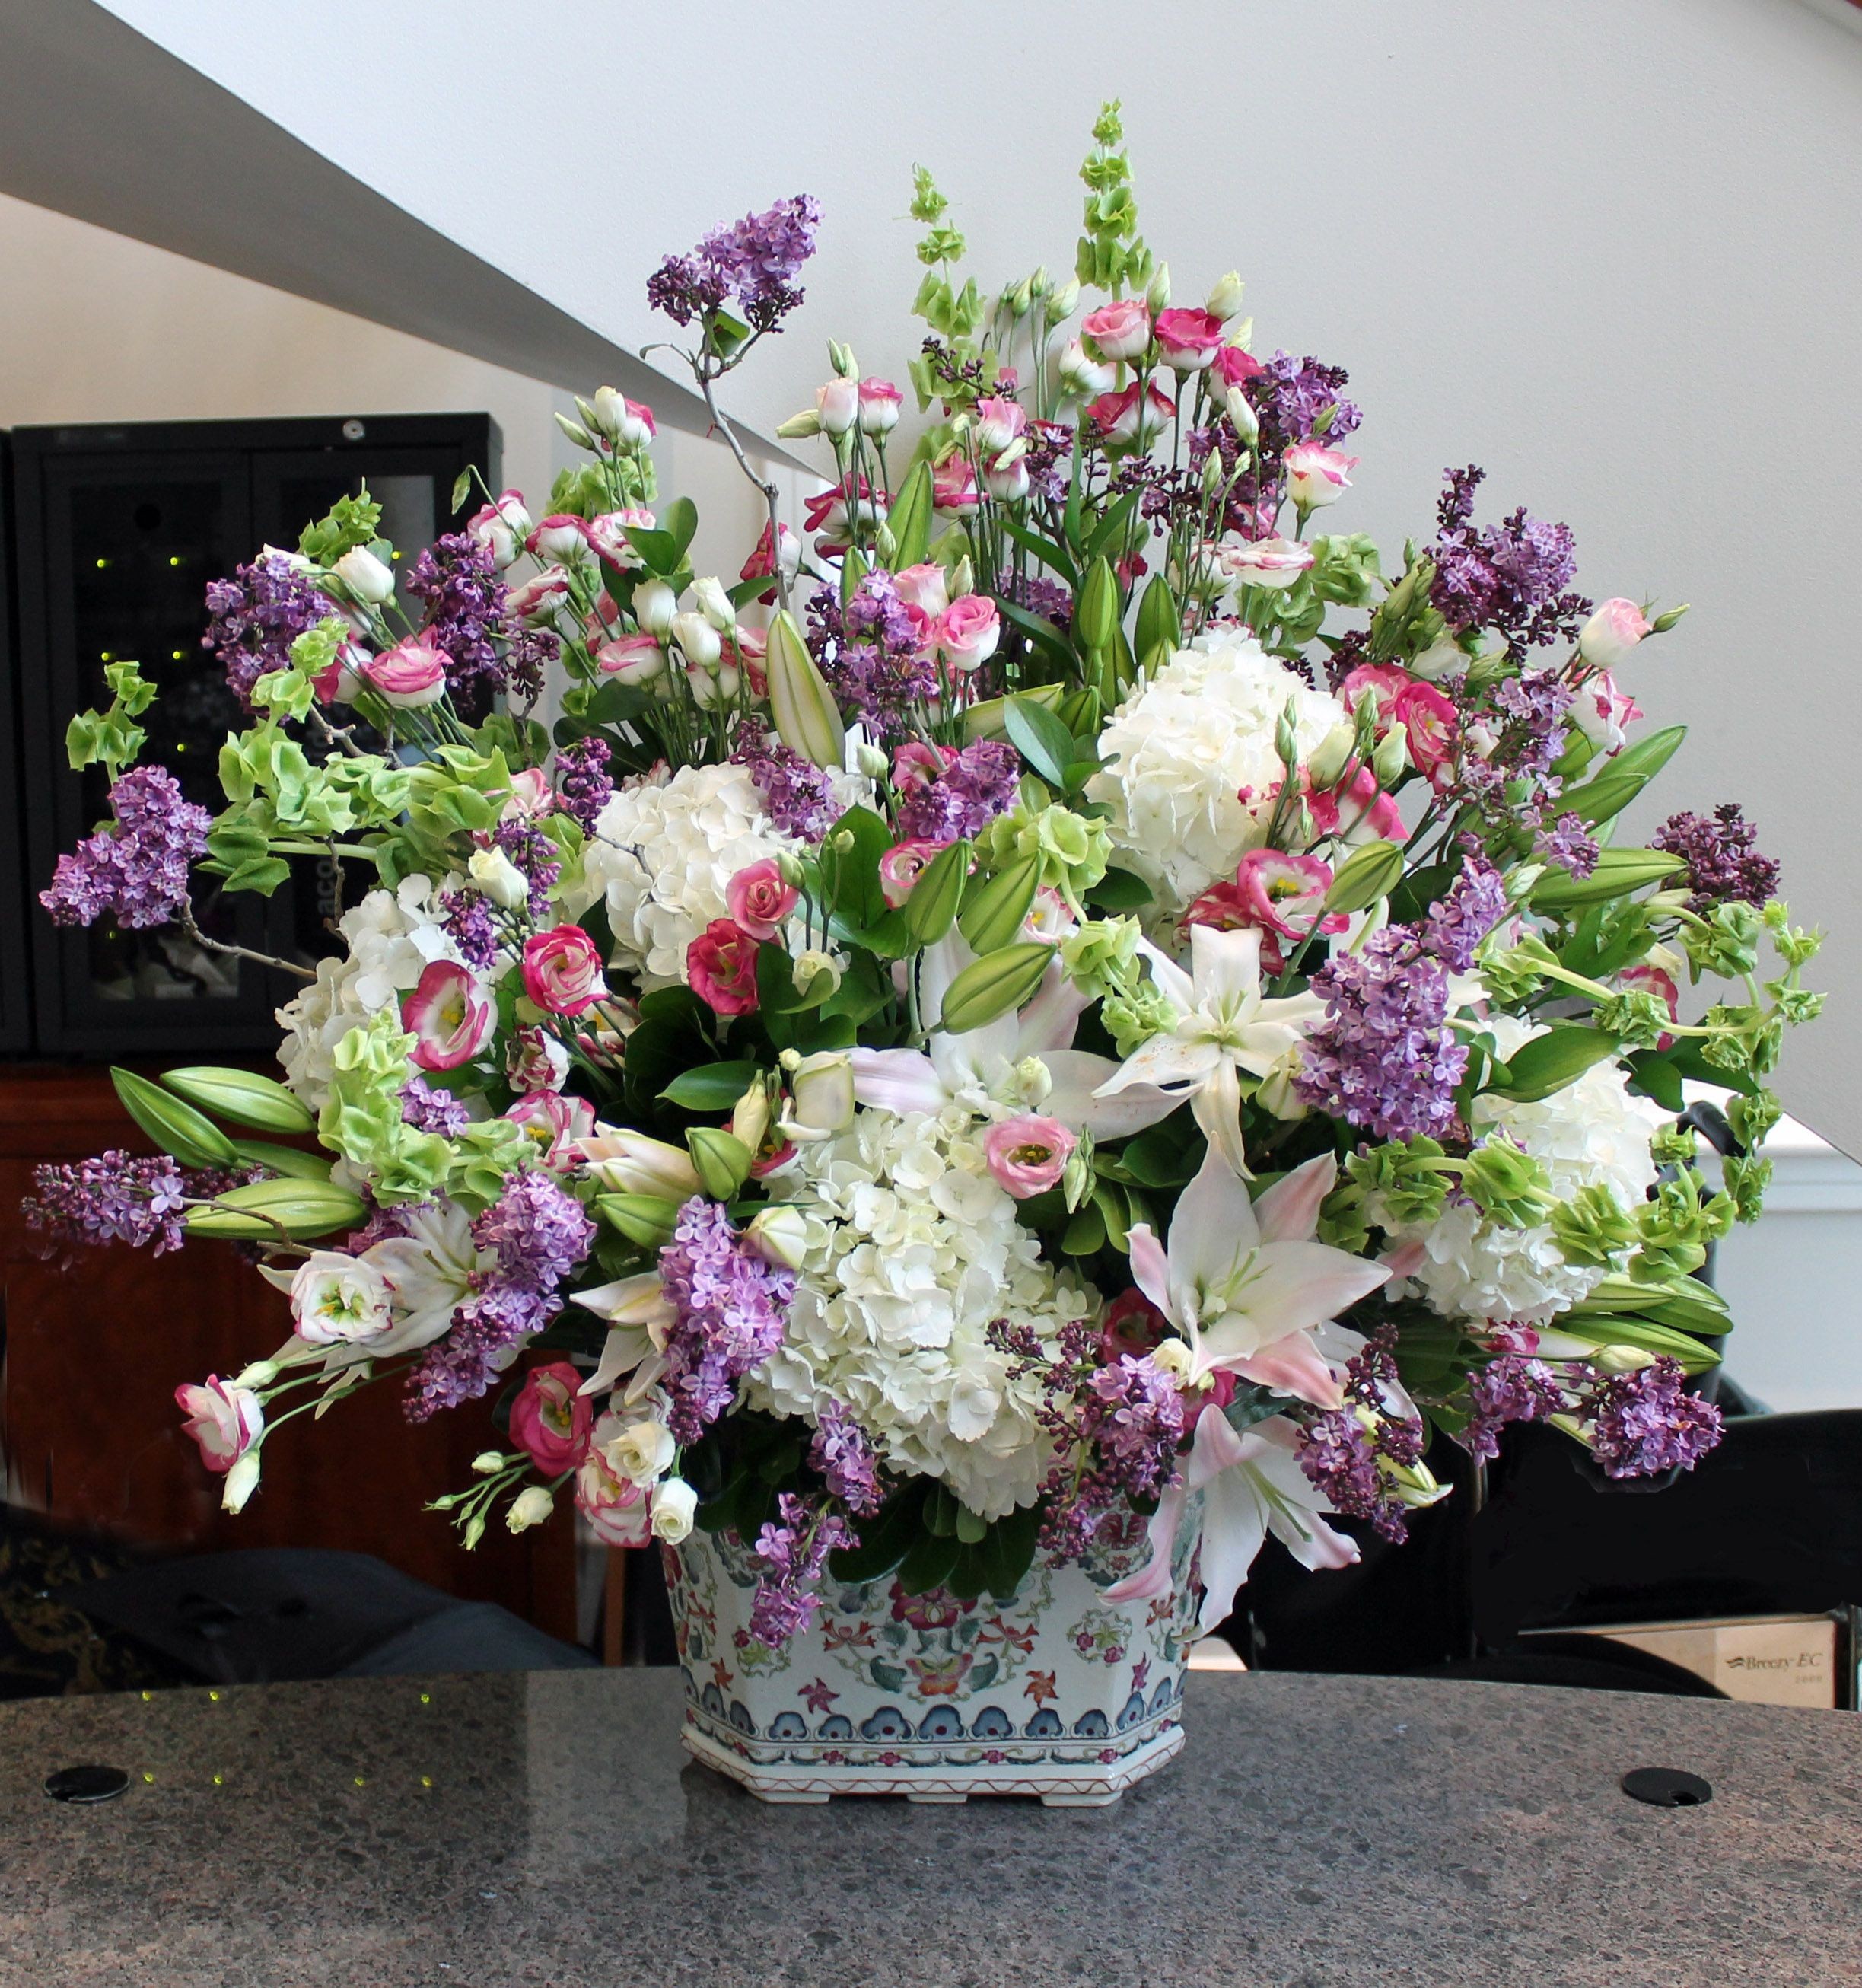 Arrangement From April 29 2014 Lilies Lilac Bells Of Ireland Lisianthus And Hydrangea Flower Arrangements Floral Arrangements Summer Floral